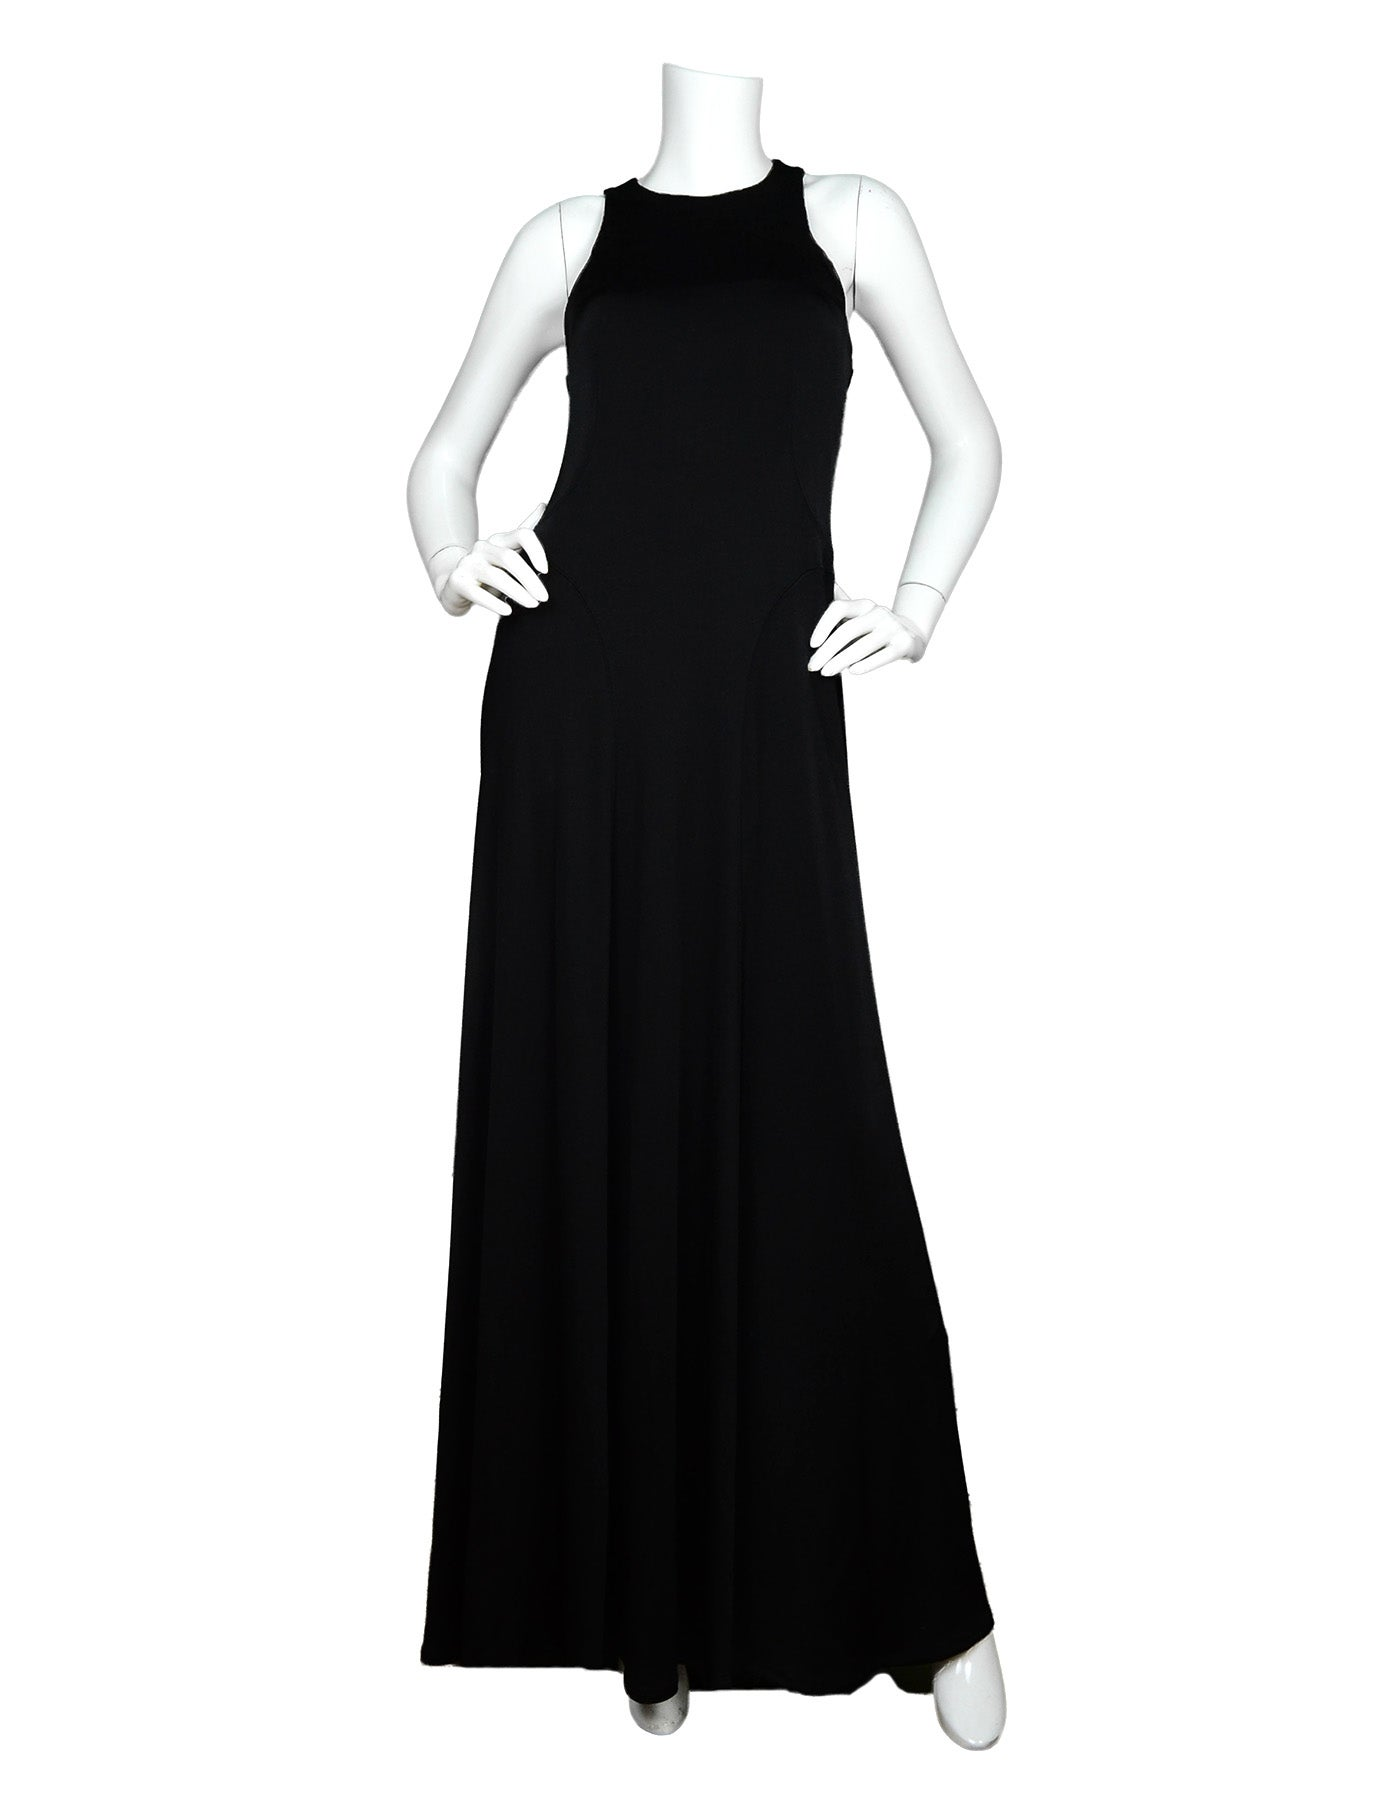 79a383c6c7c1 The Row Black Jersey Scuba / Bodycon Stretchy Sleeveless Gown Dress For Sale  at 1stdibs